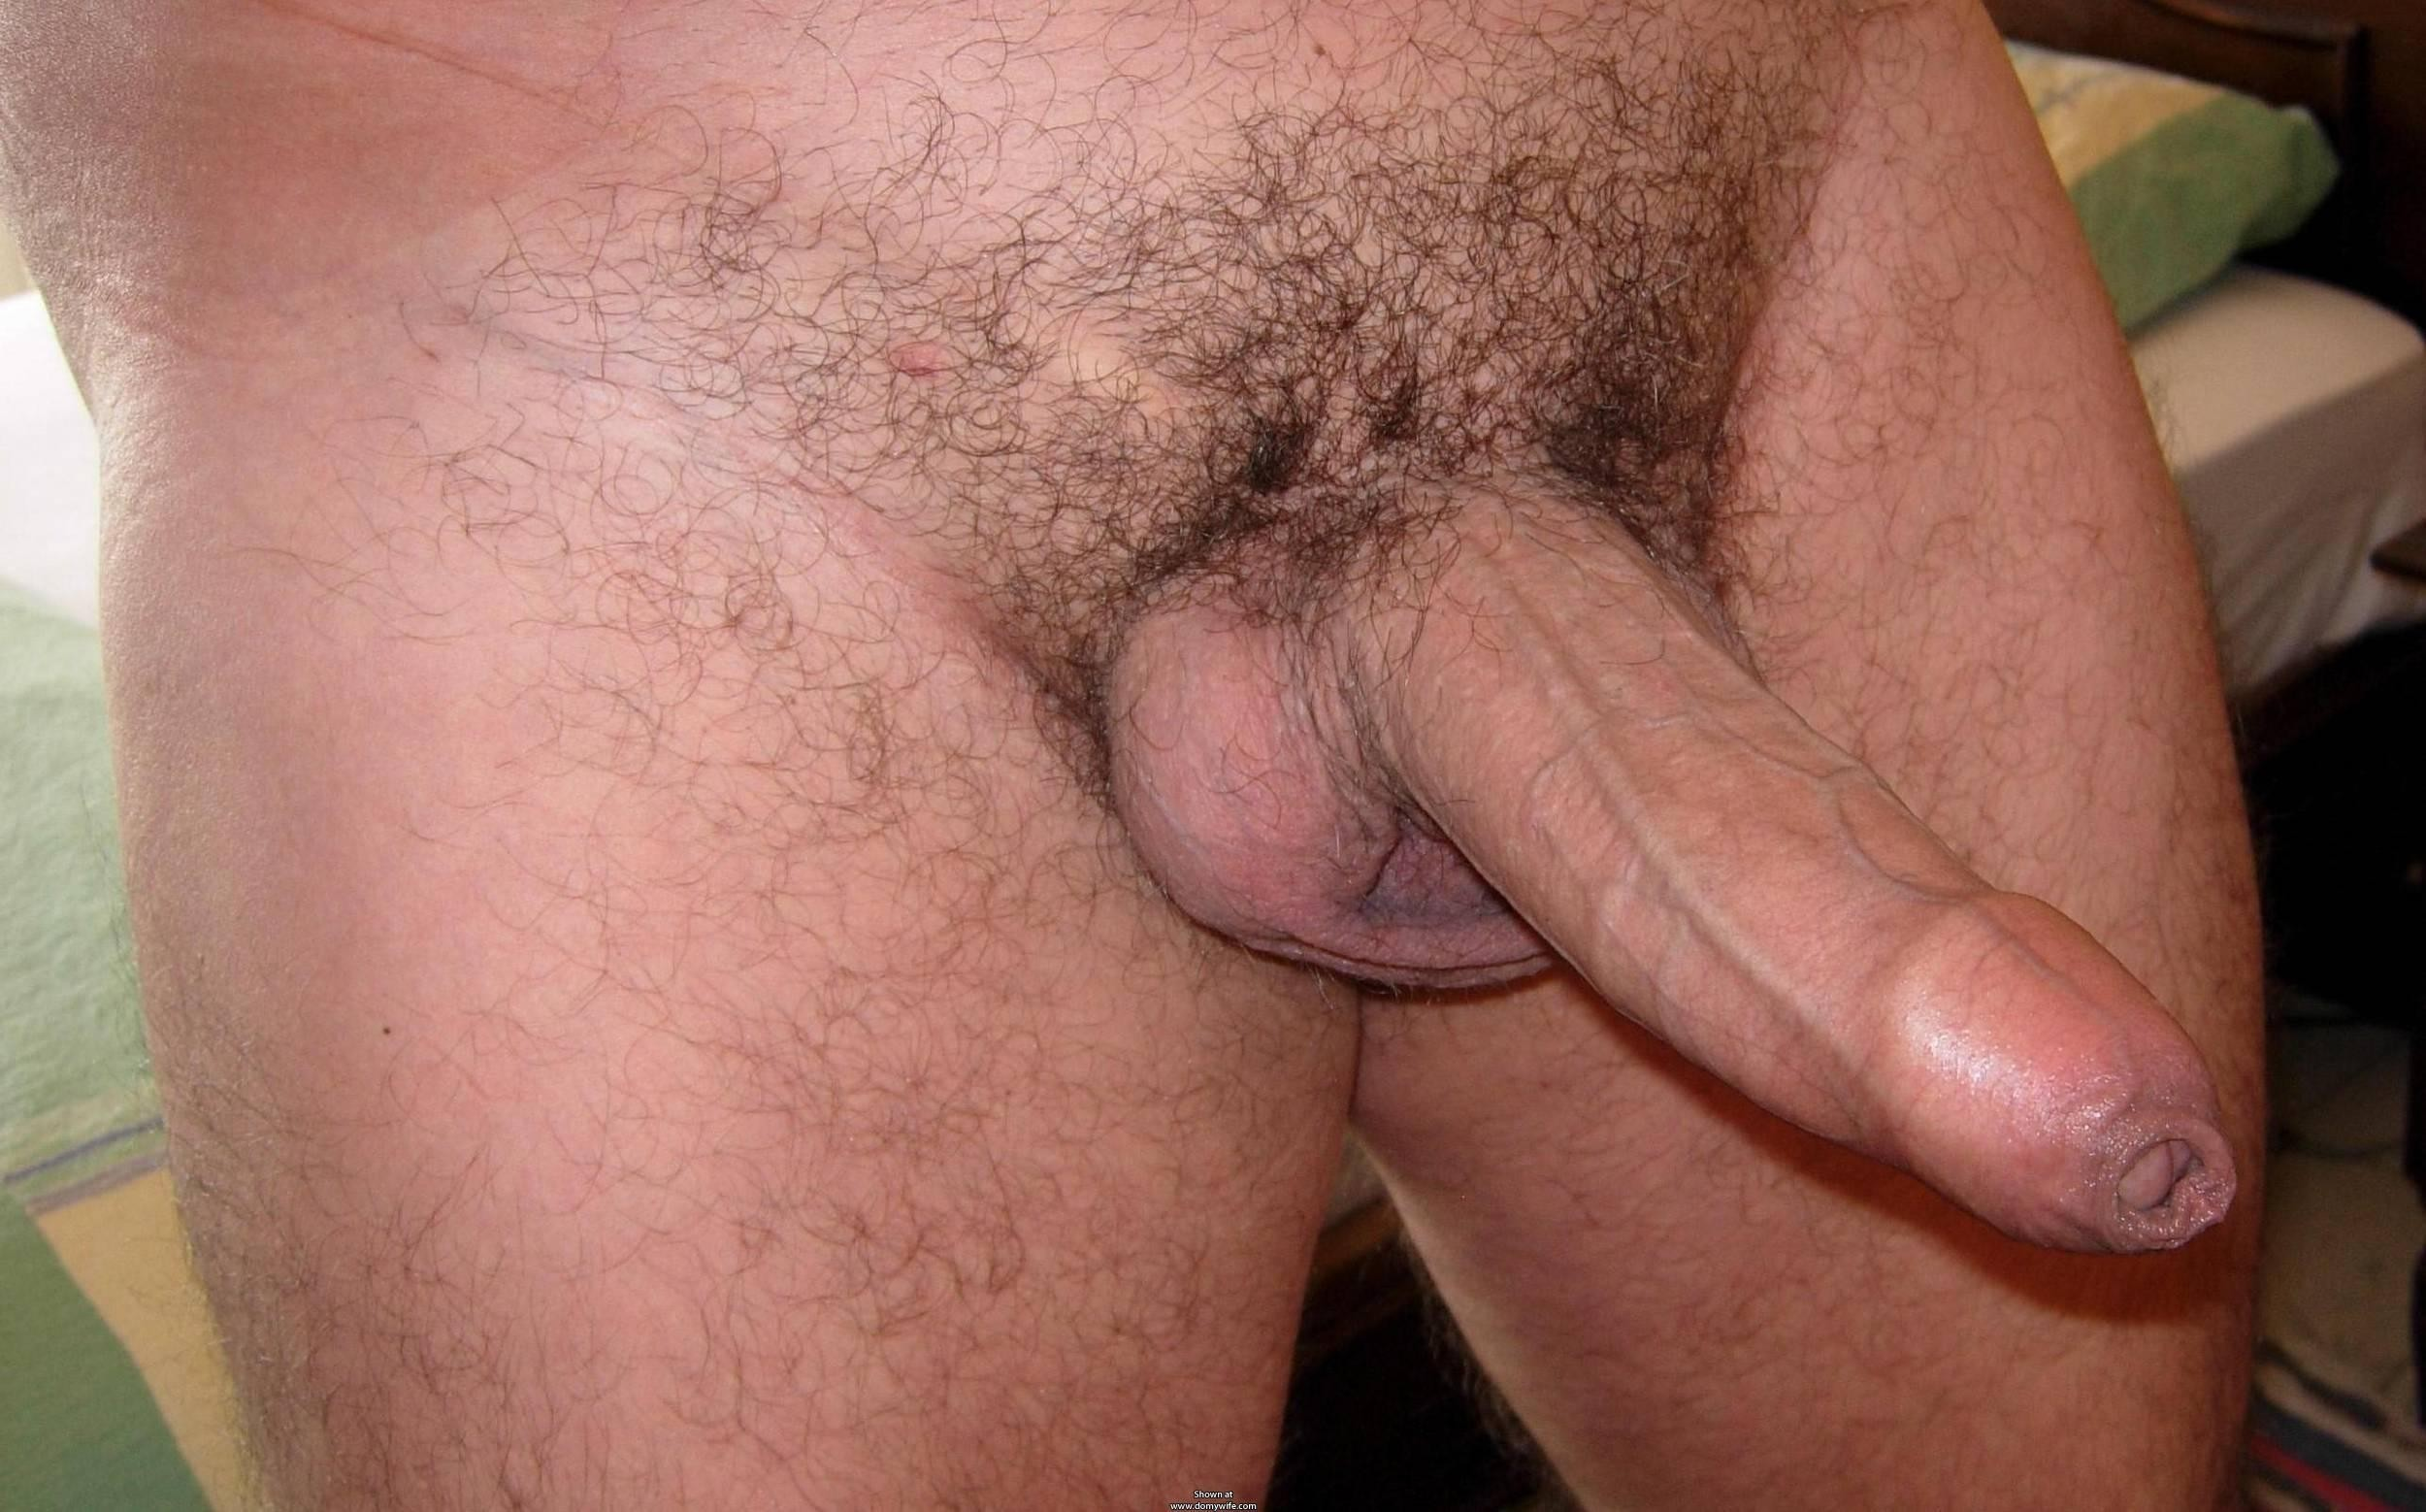 Images of uncut cocks